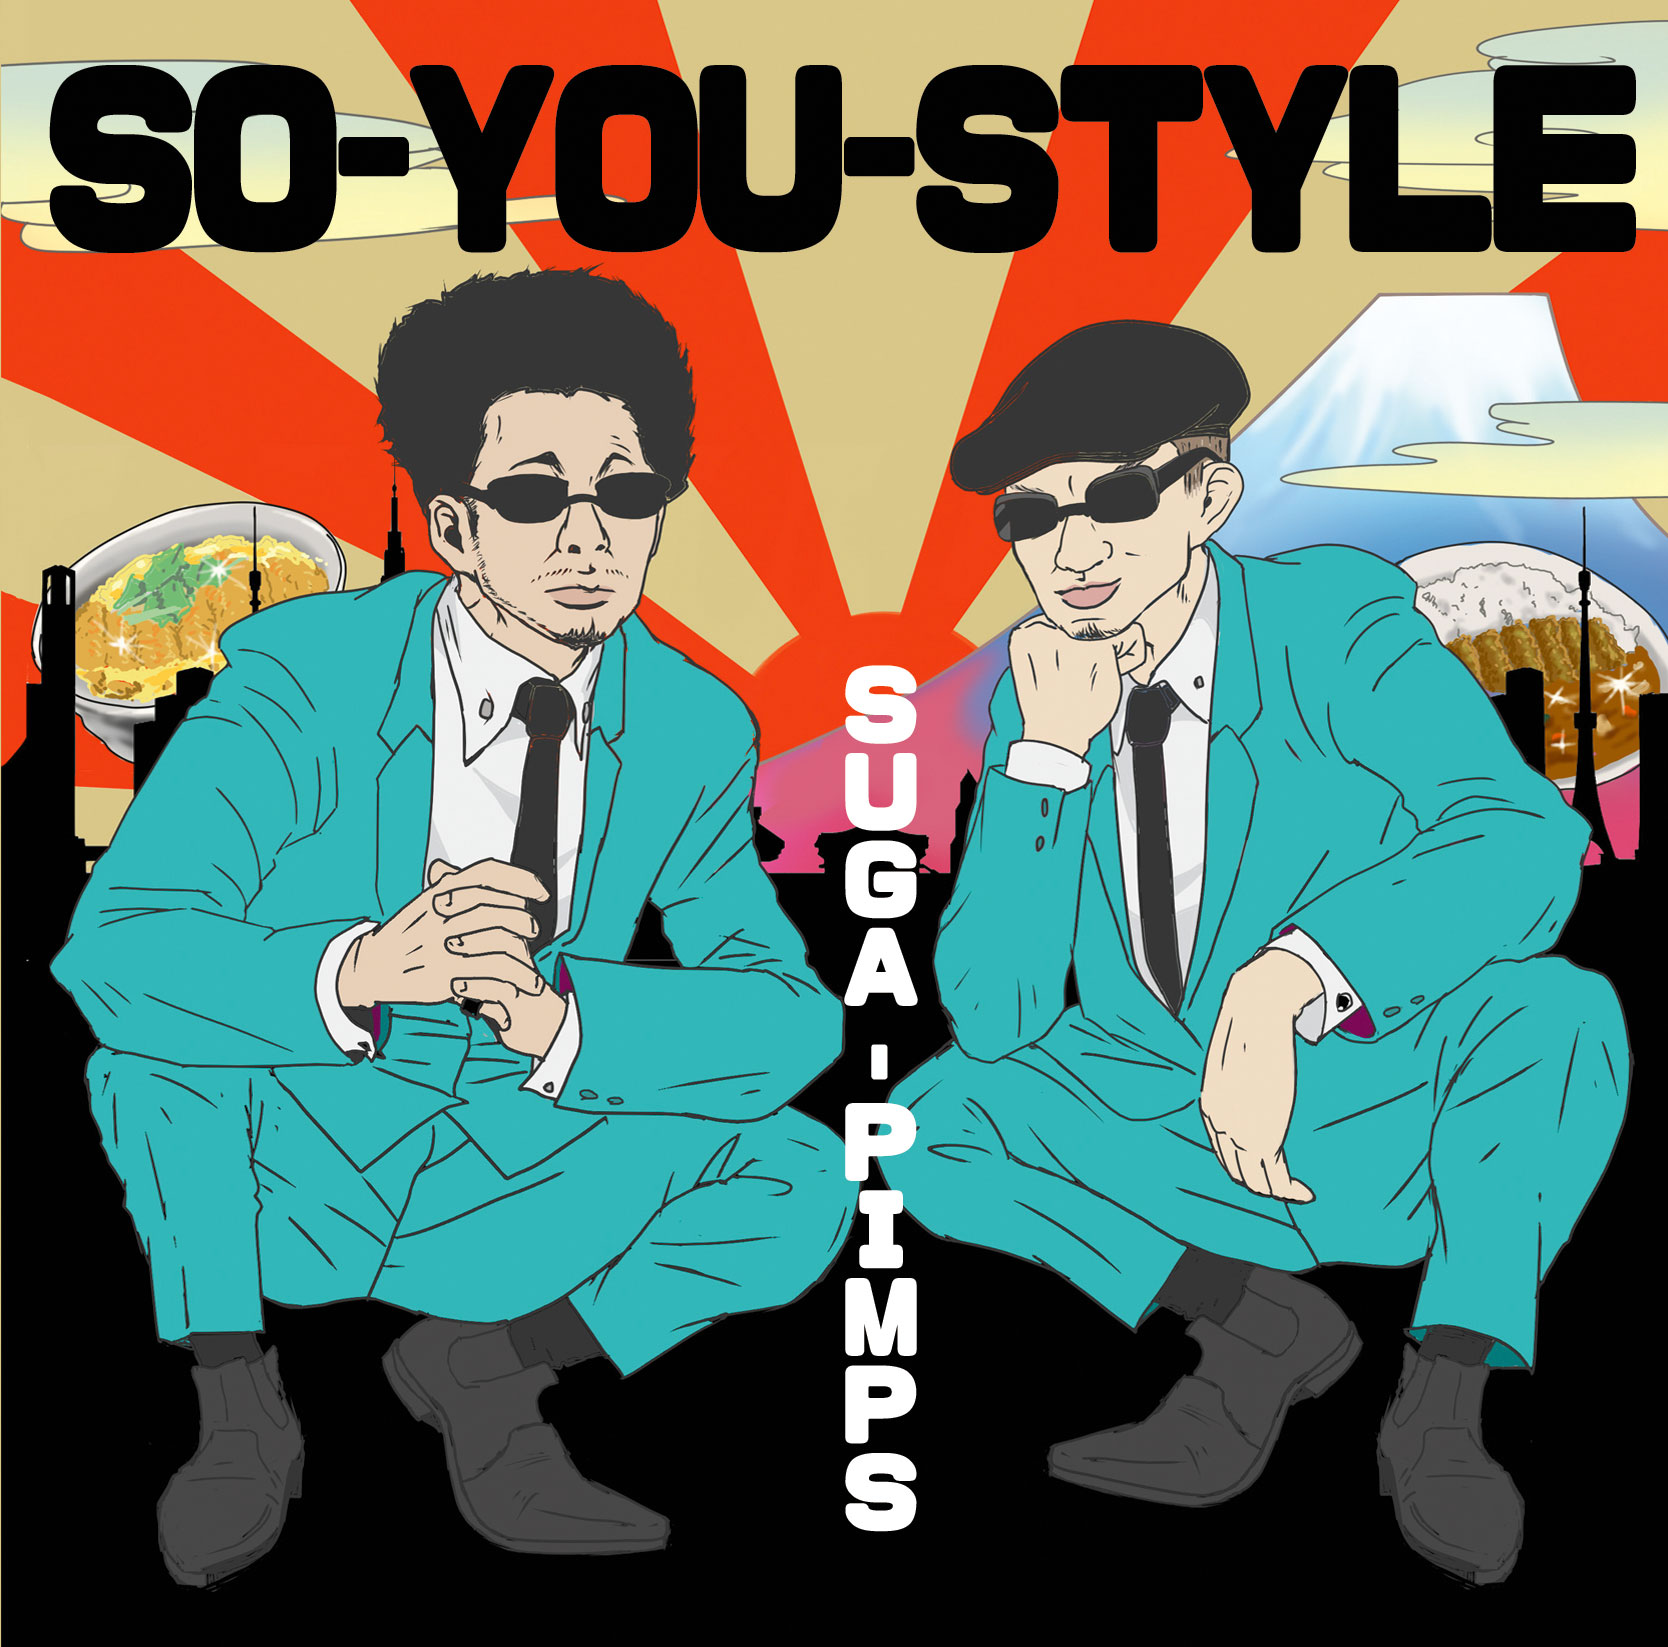 soyoustyle